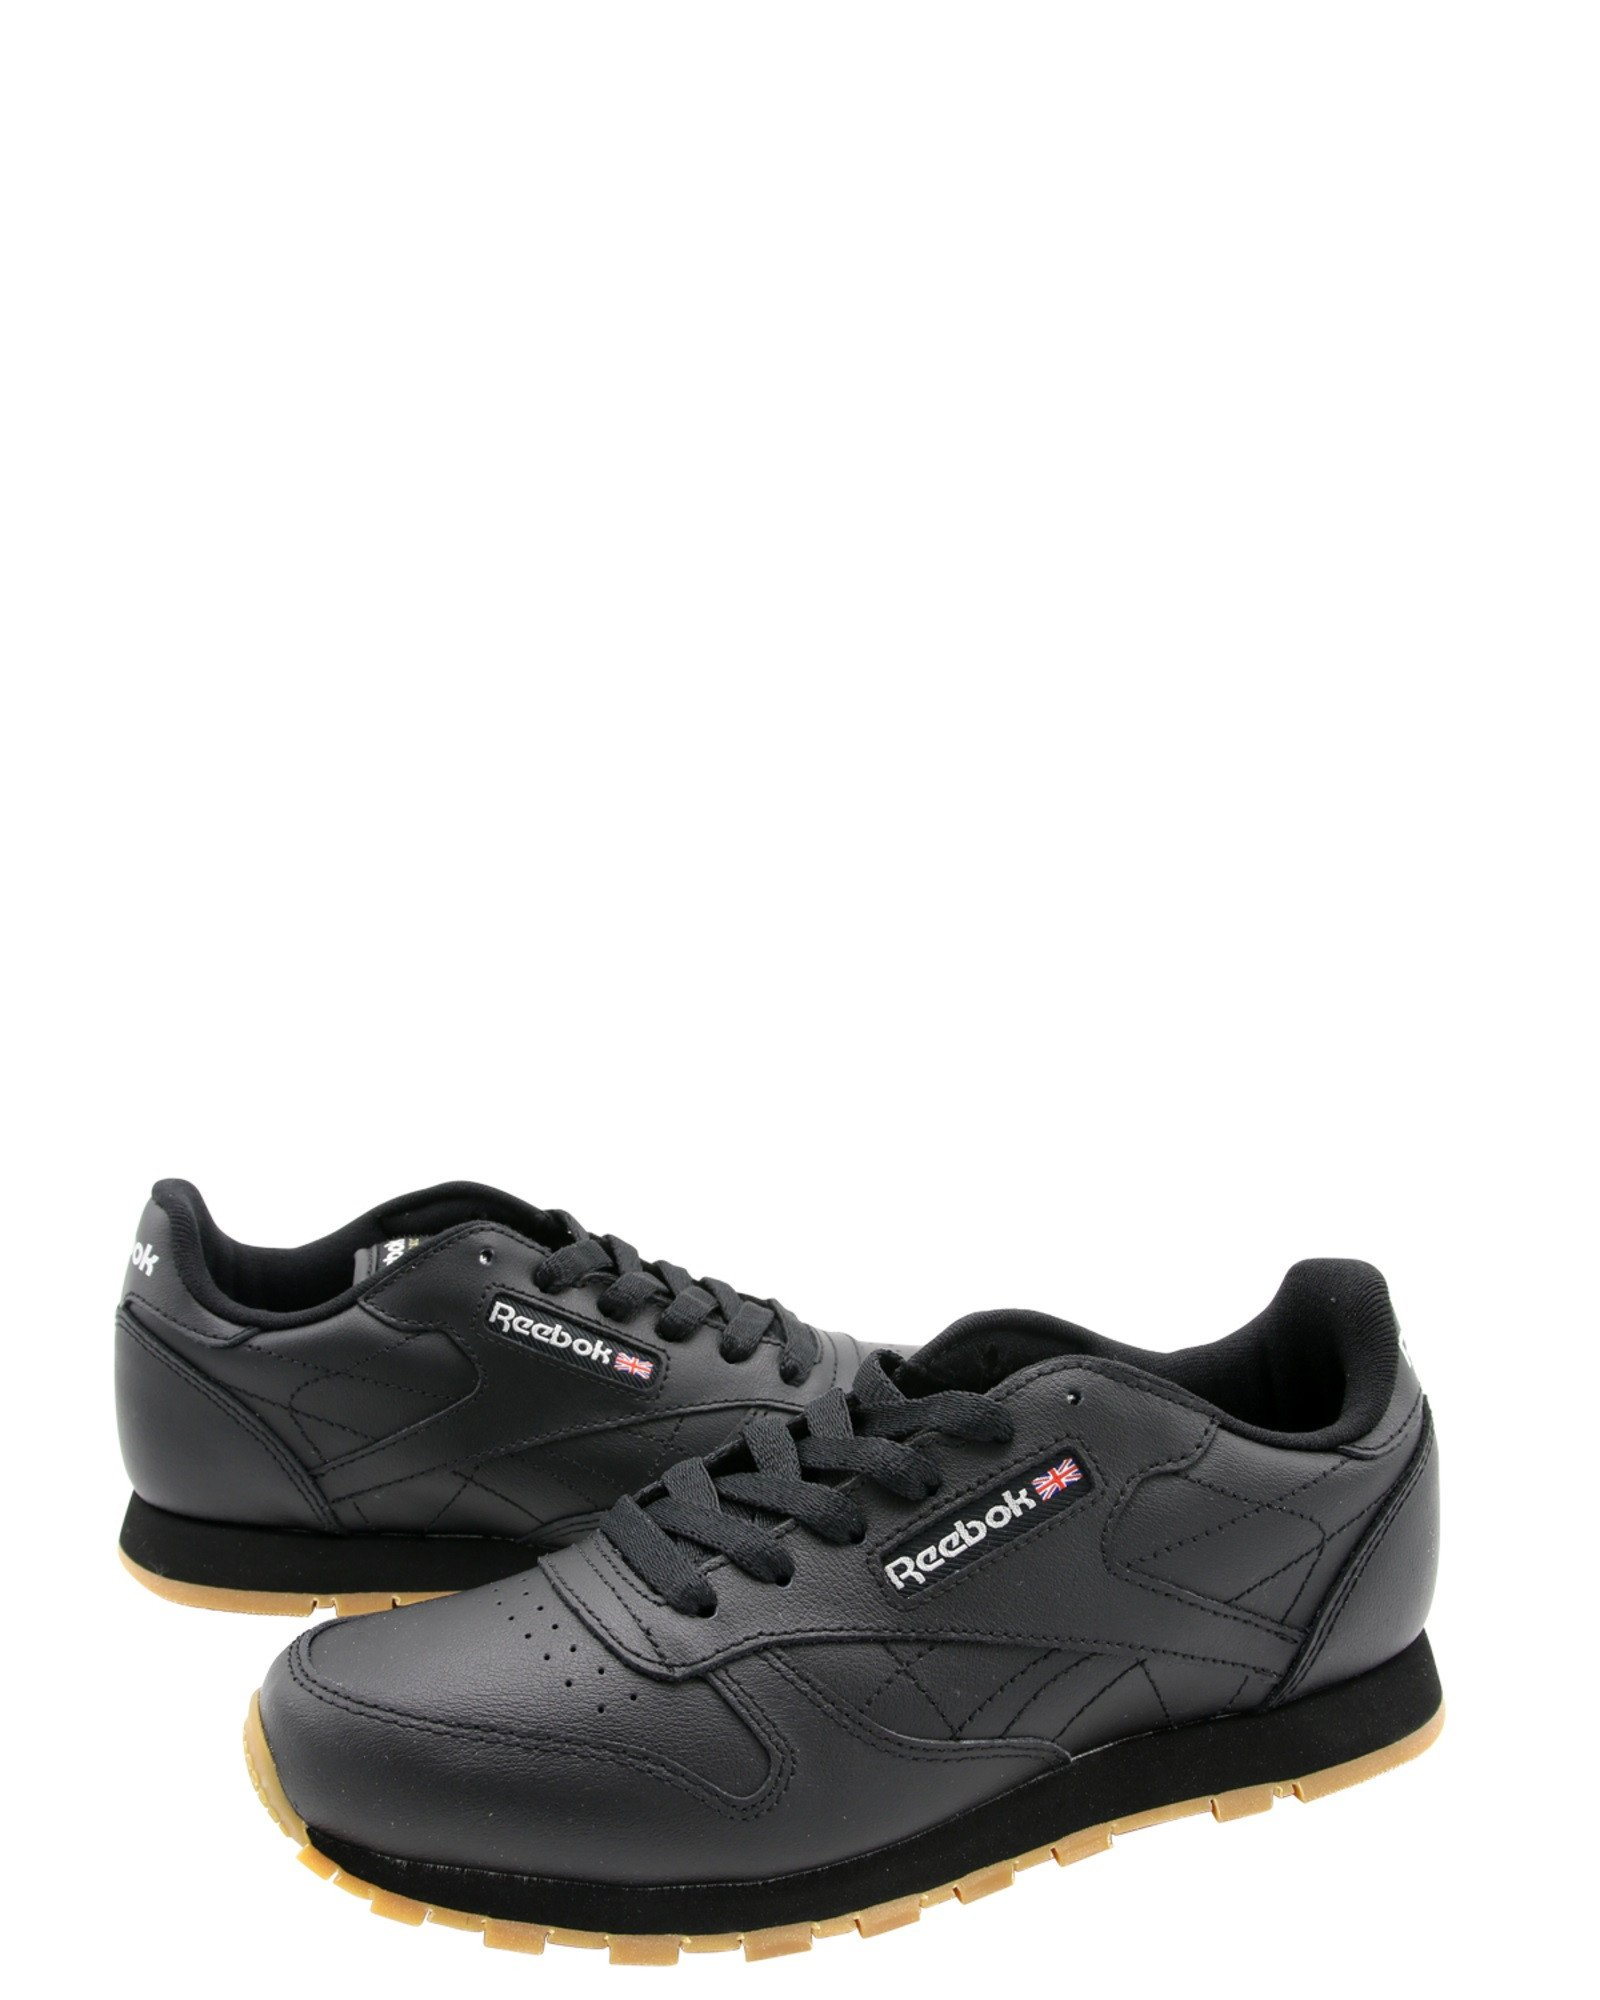 47193fbc0 Leather upper in black and gum. - Lace-up design. - Logo on side. - Lightly  padded insole. - Durable rubber gum outsole for grip and traction.